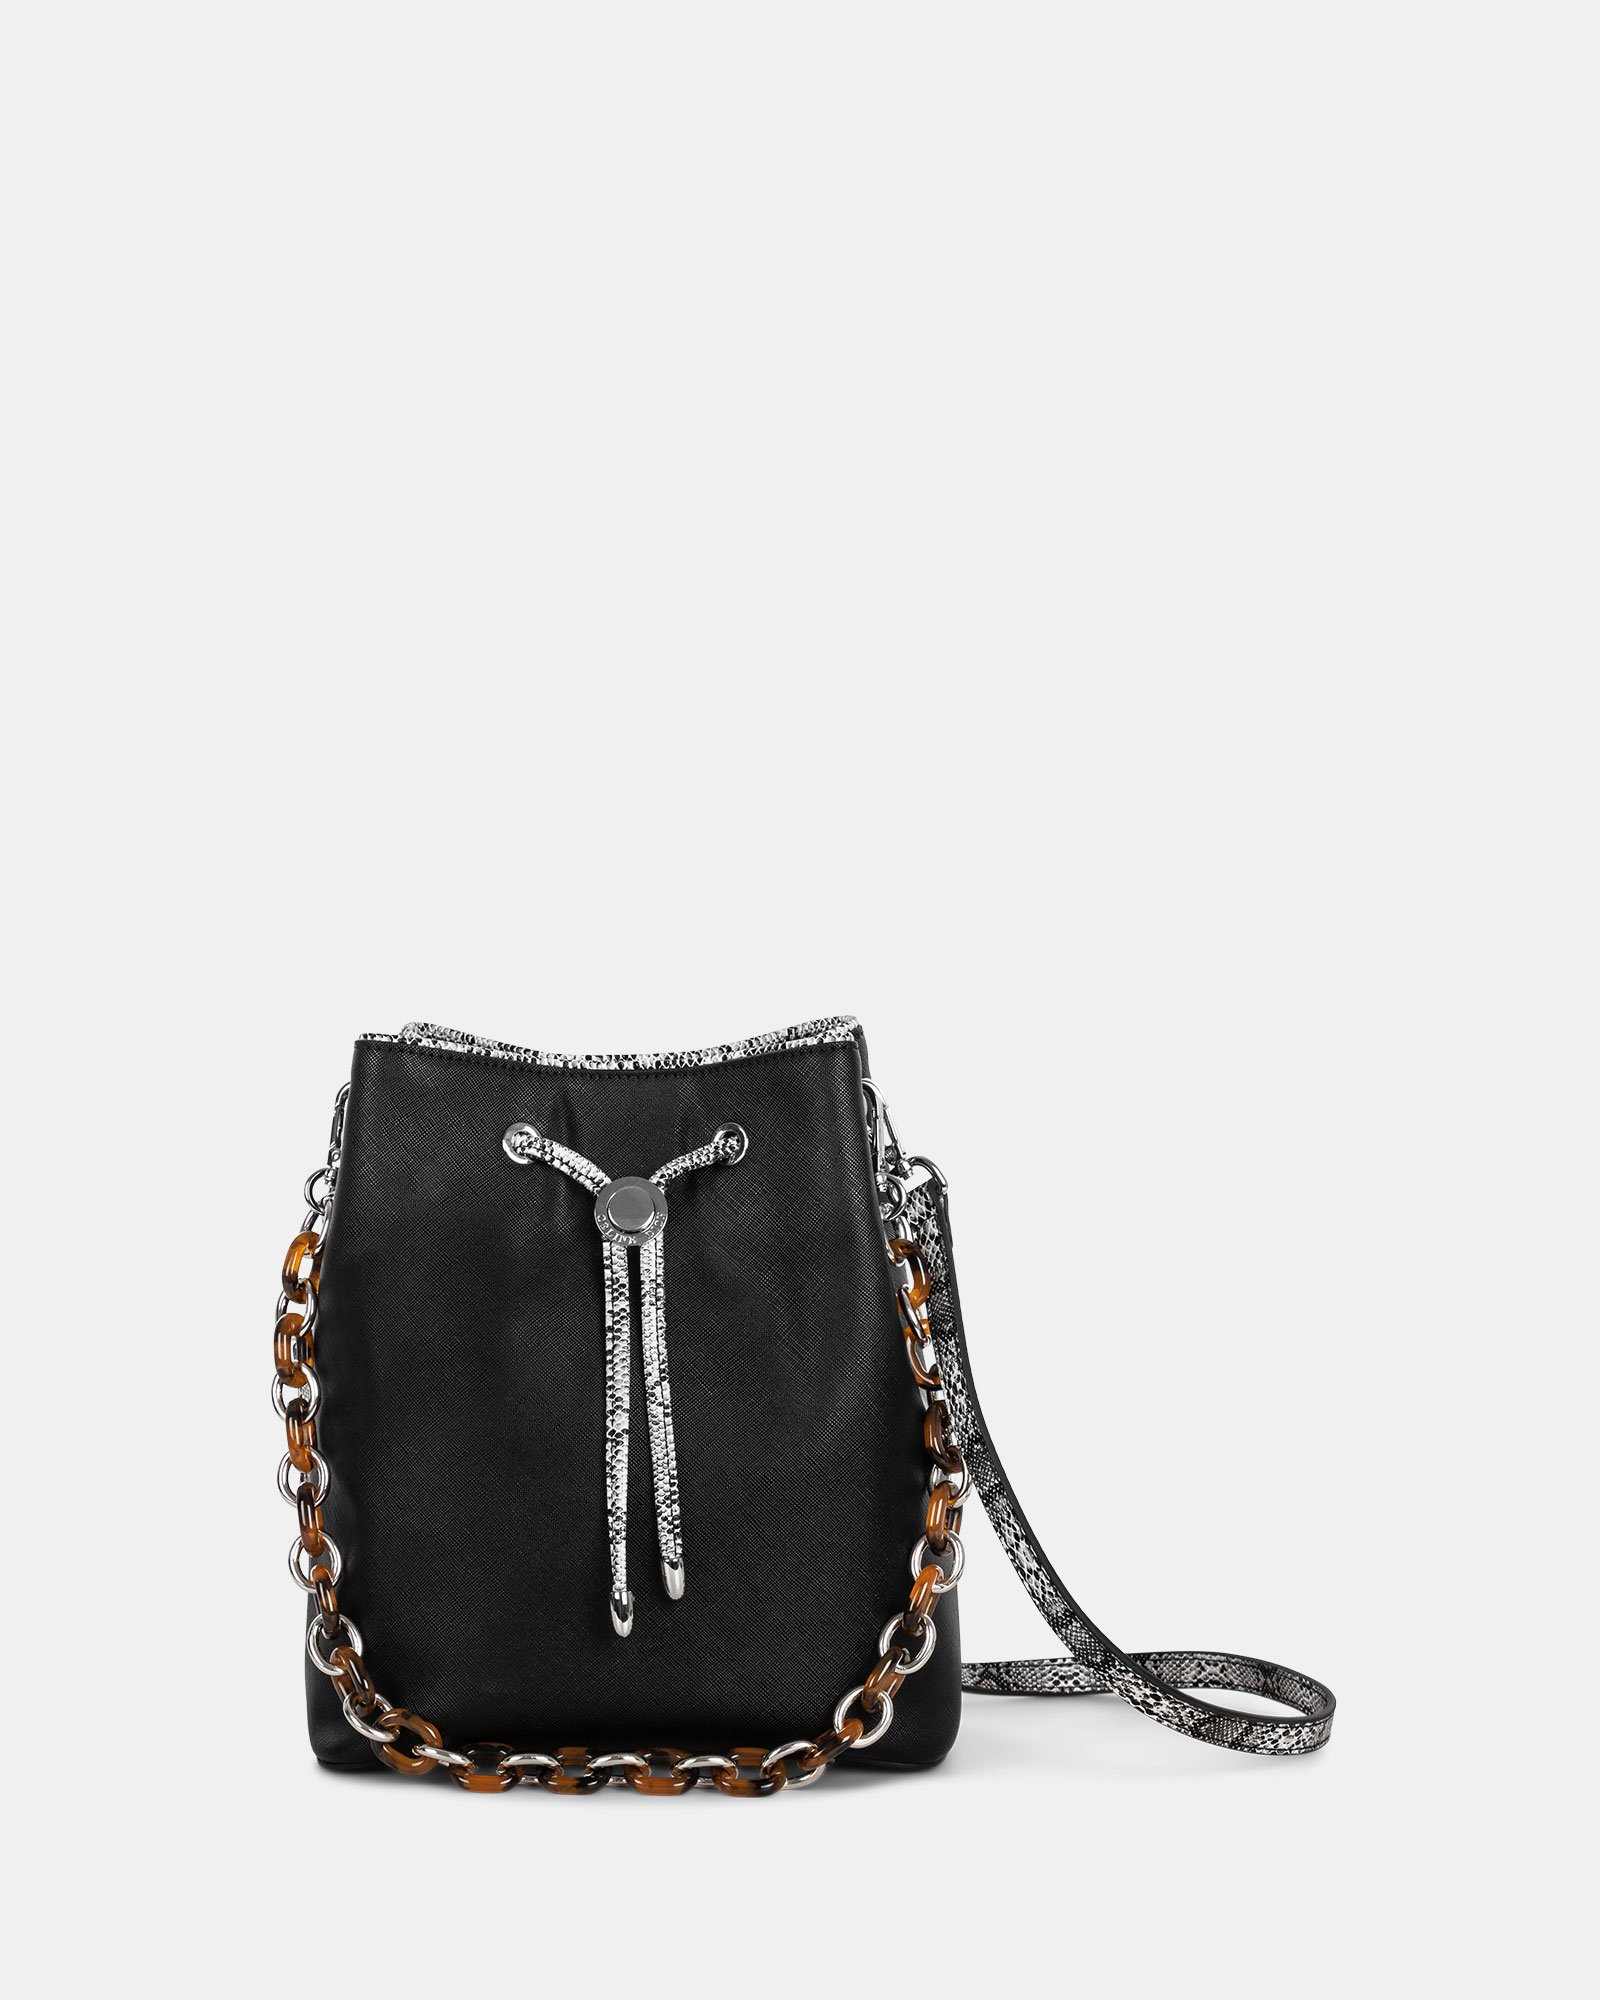 Duo - Satchel with adjustable and detachable crossbody strap - Black/snake - Céline Dion - Zoom